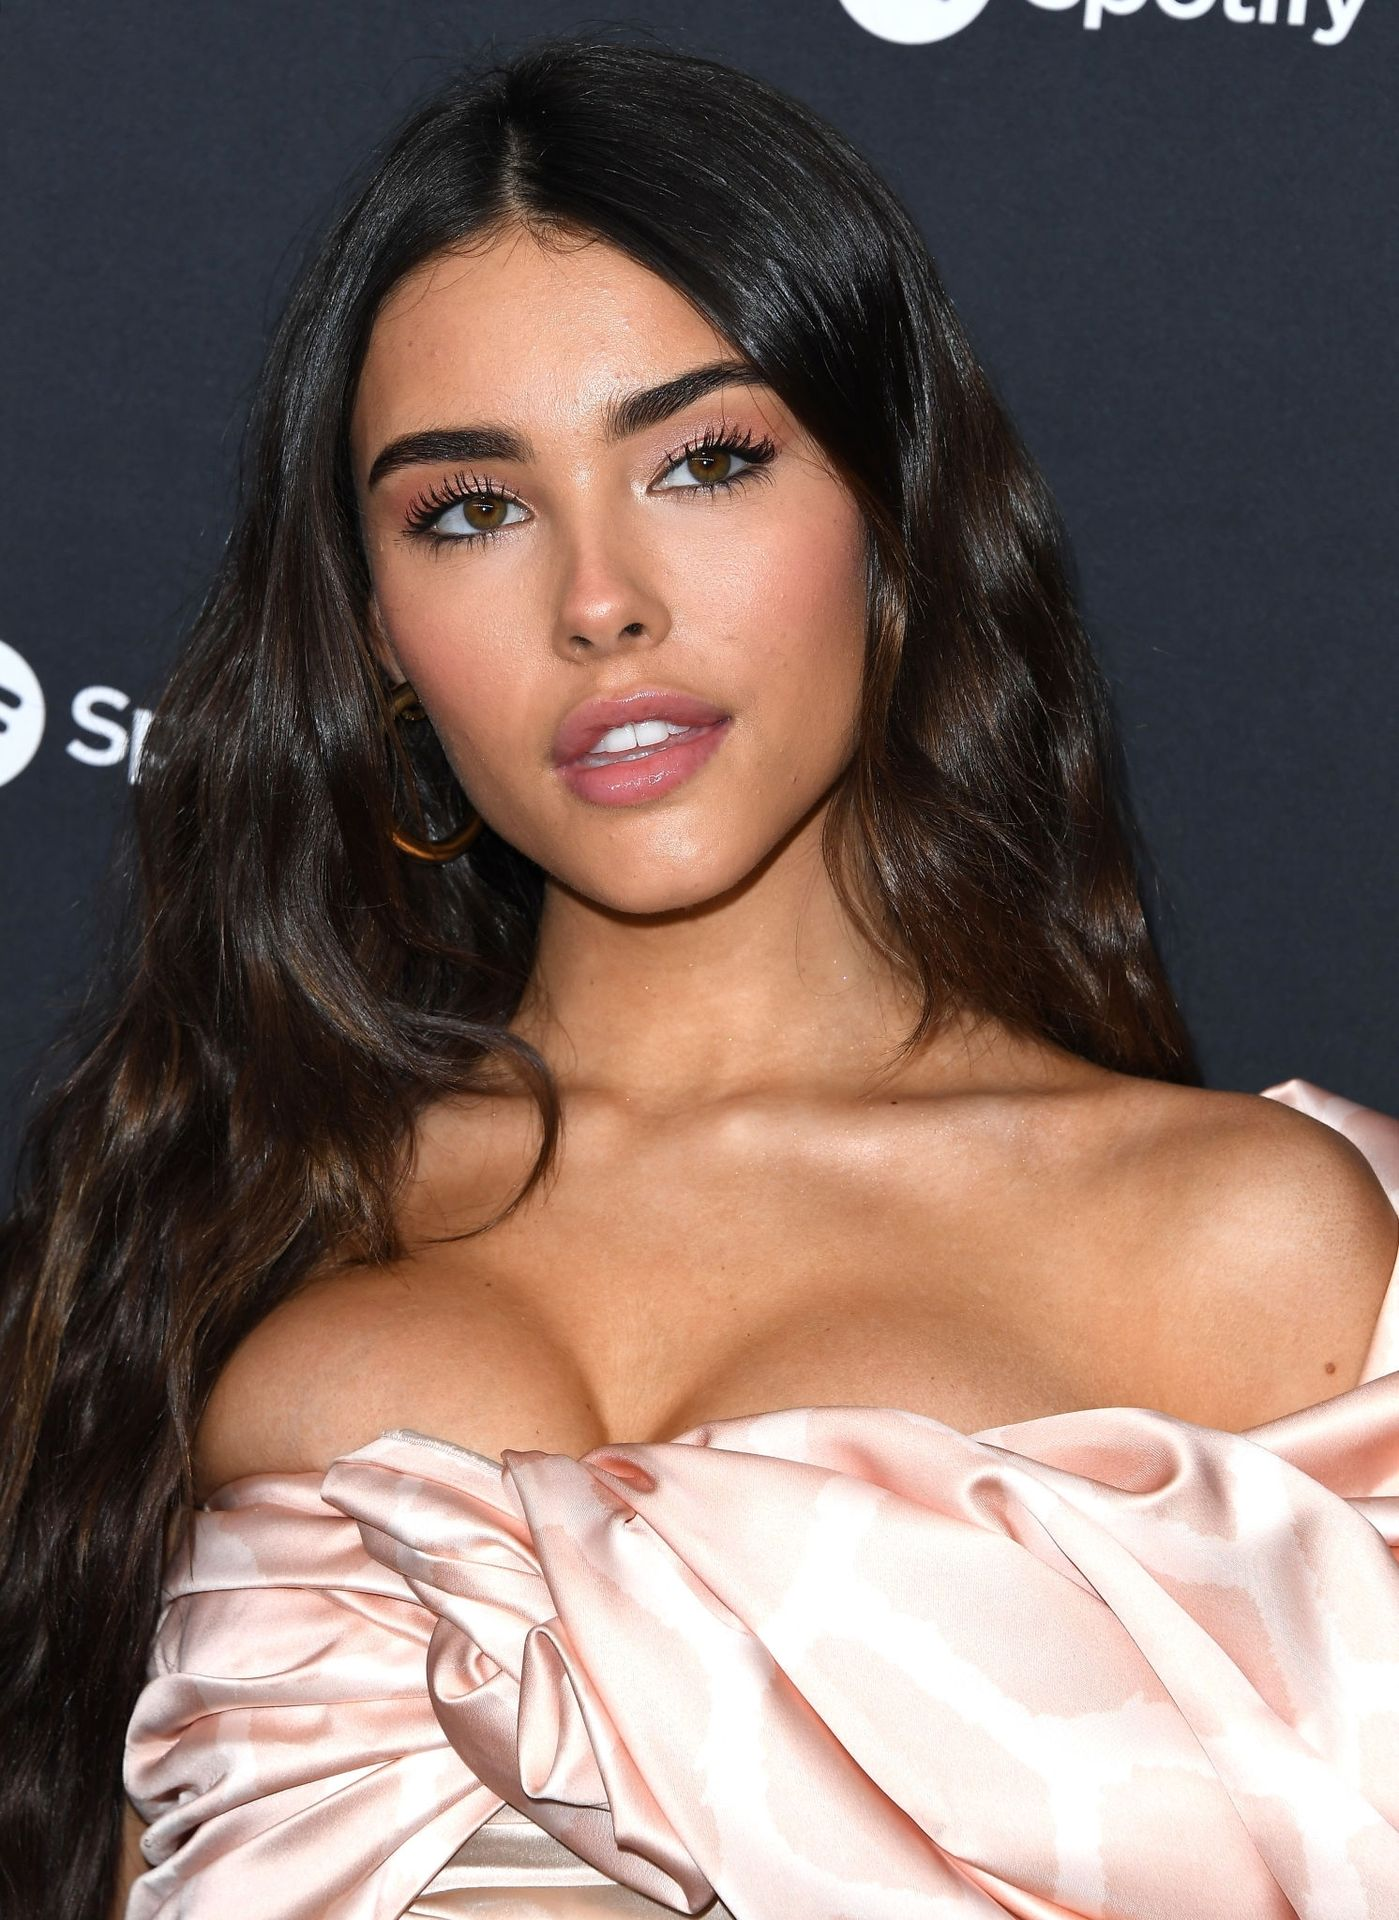 Madison Beer Displays Her Boobs At The Spotify Best New Artist Party 0003